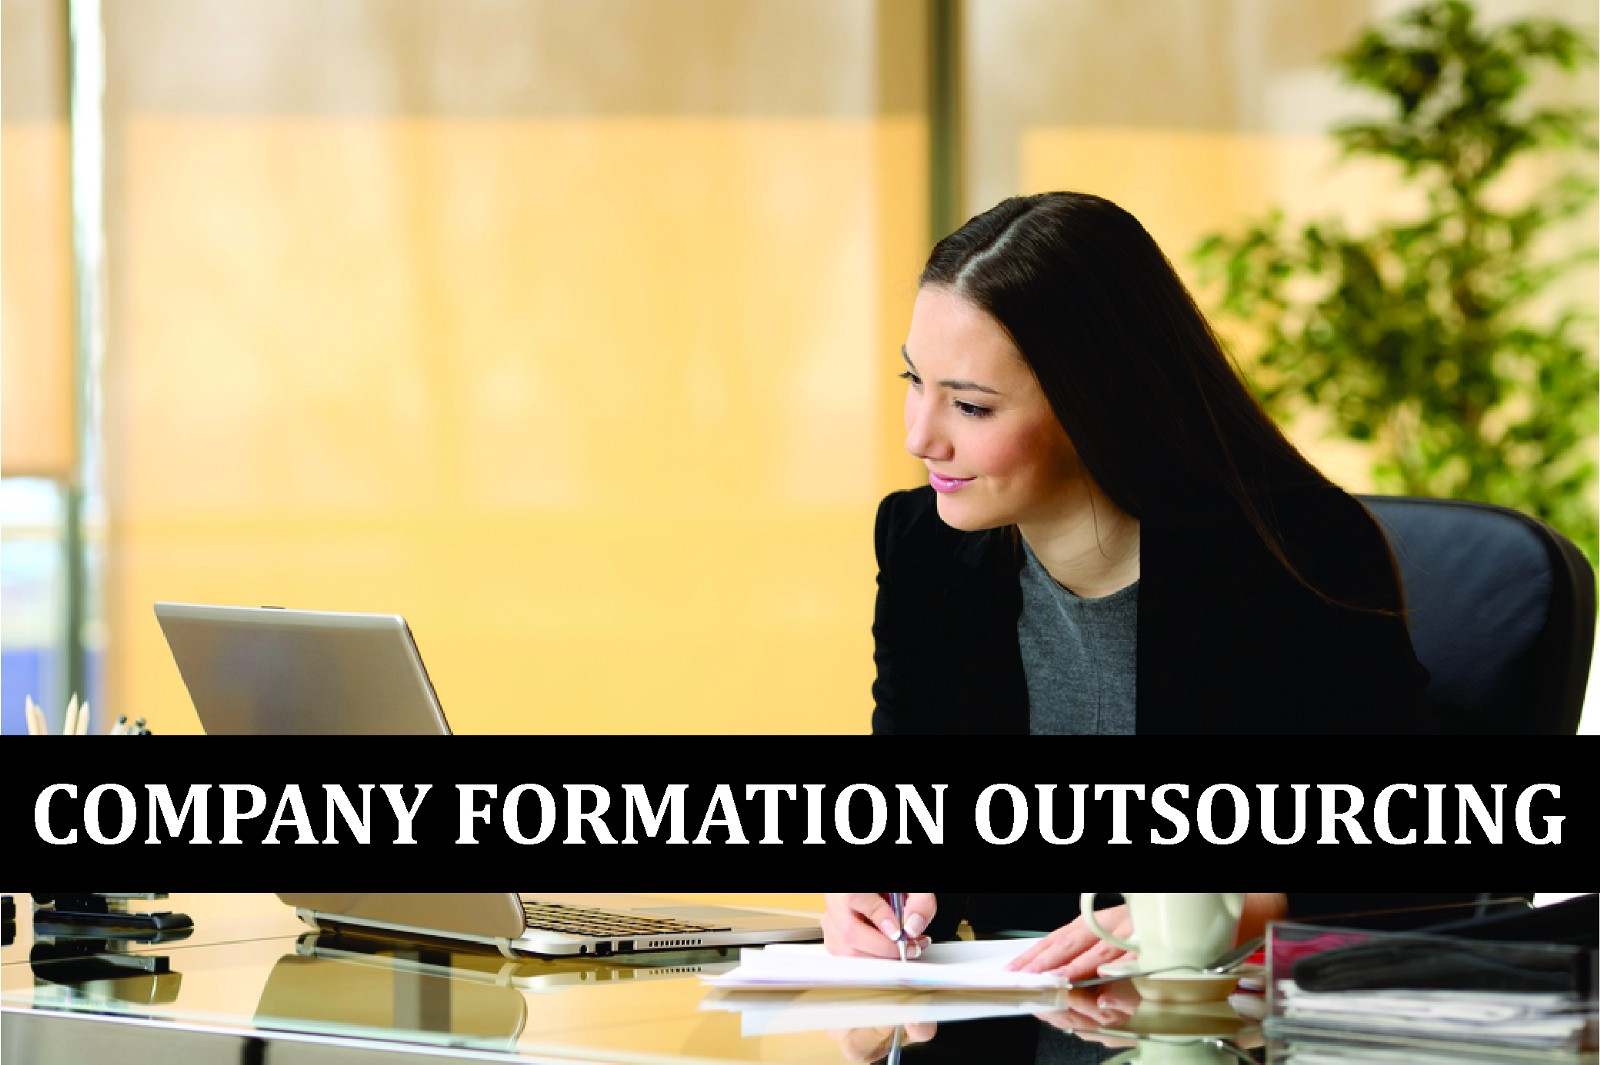 Finding Best Outsourced Company Formation Services in London UK